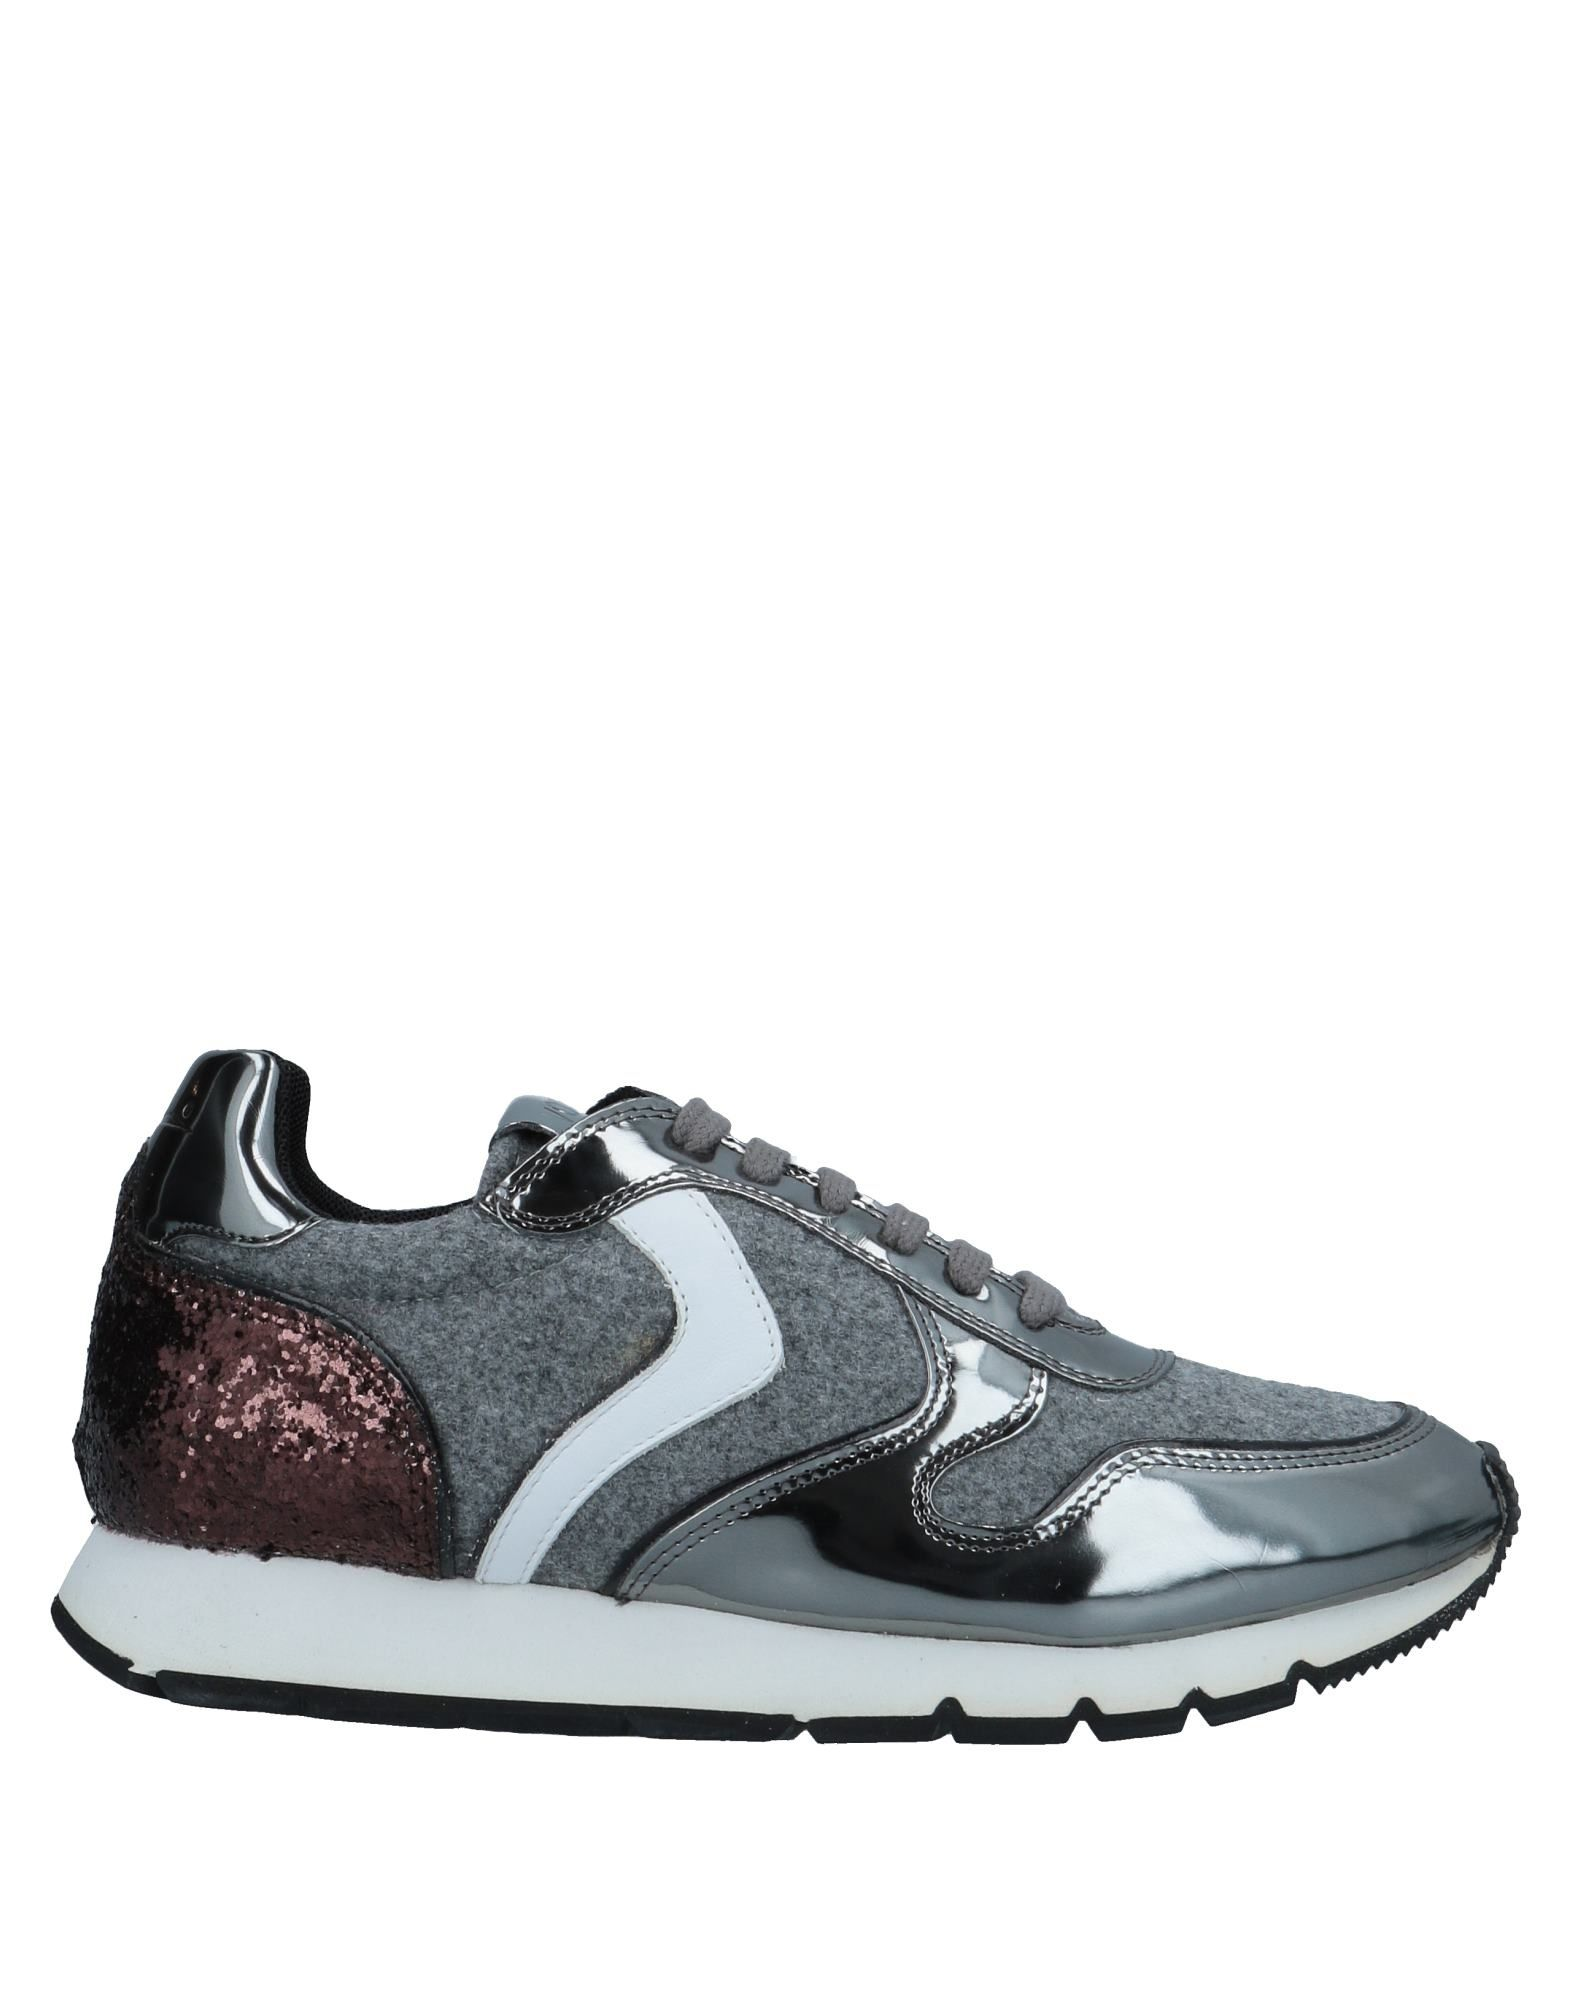 VOILE BLANCHE Sneakers in Lead